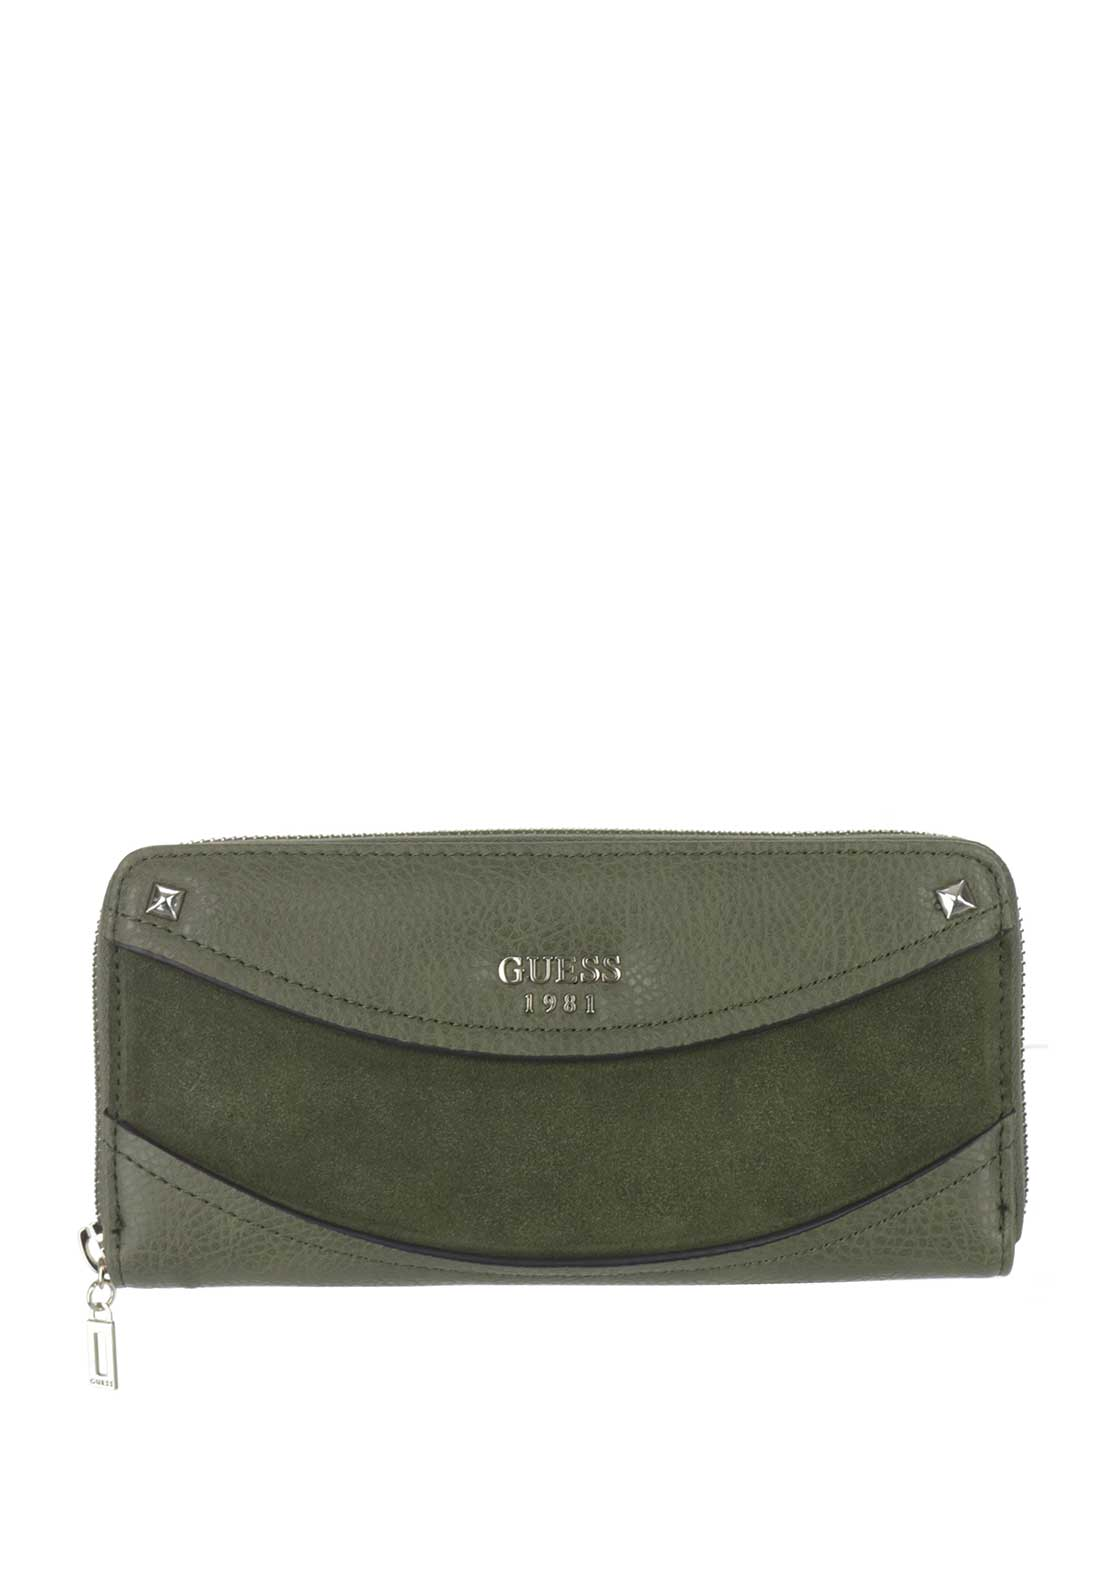 Guess Solene SLG Zip Around Purse, Olive